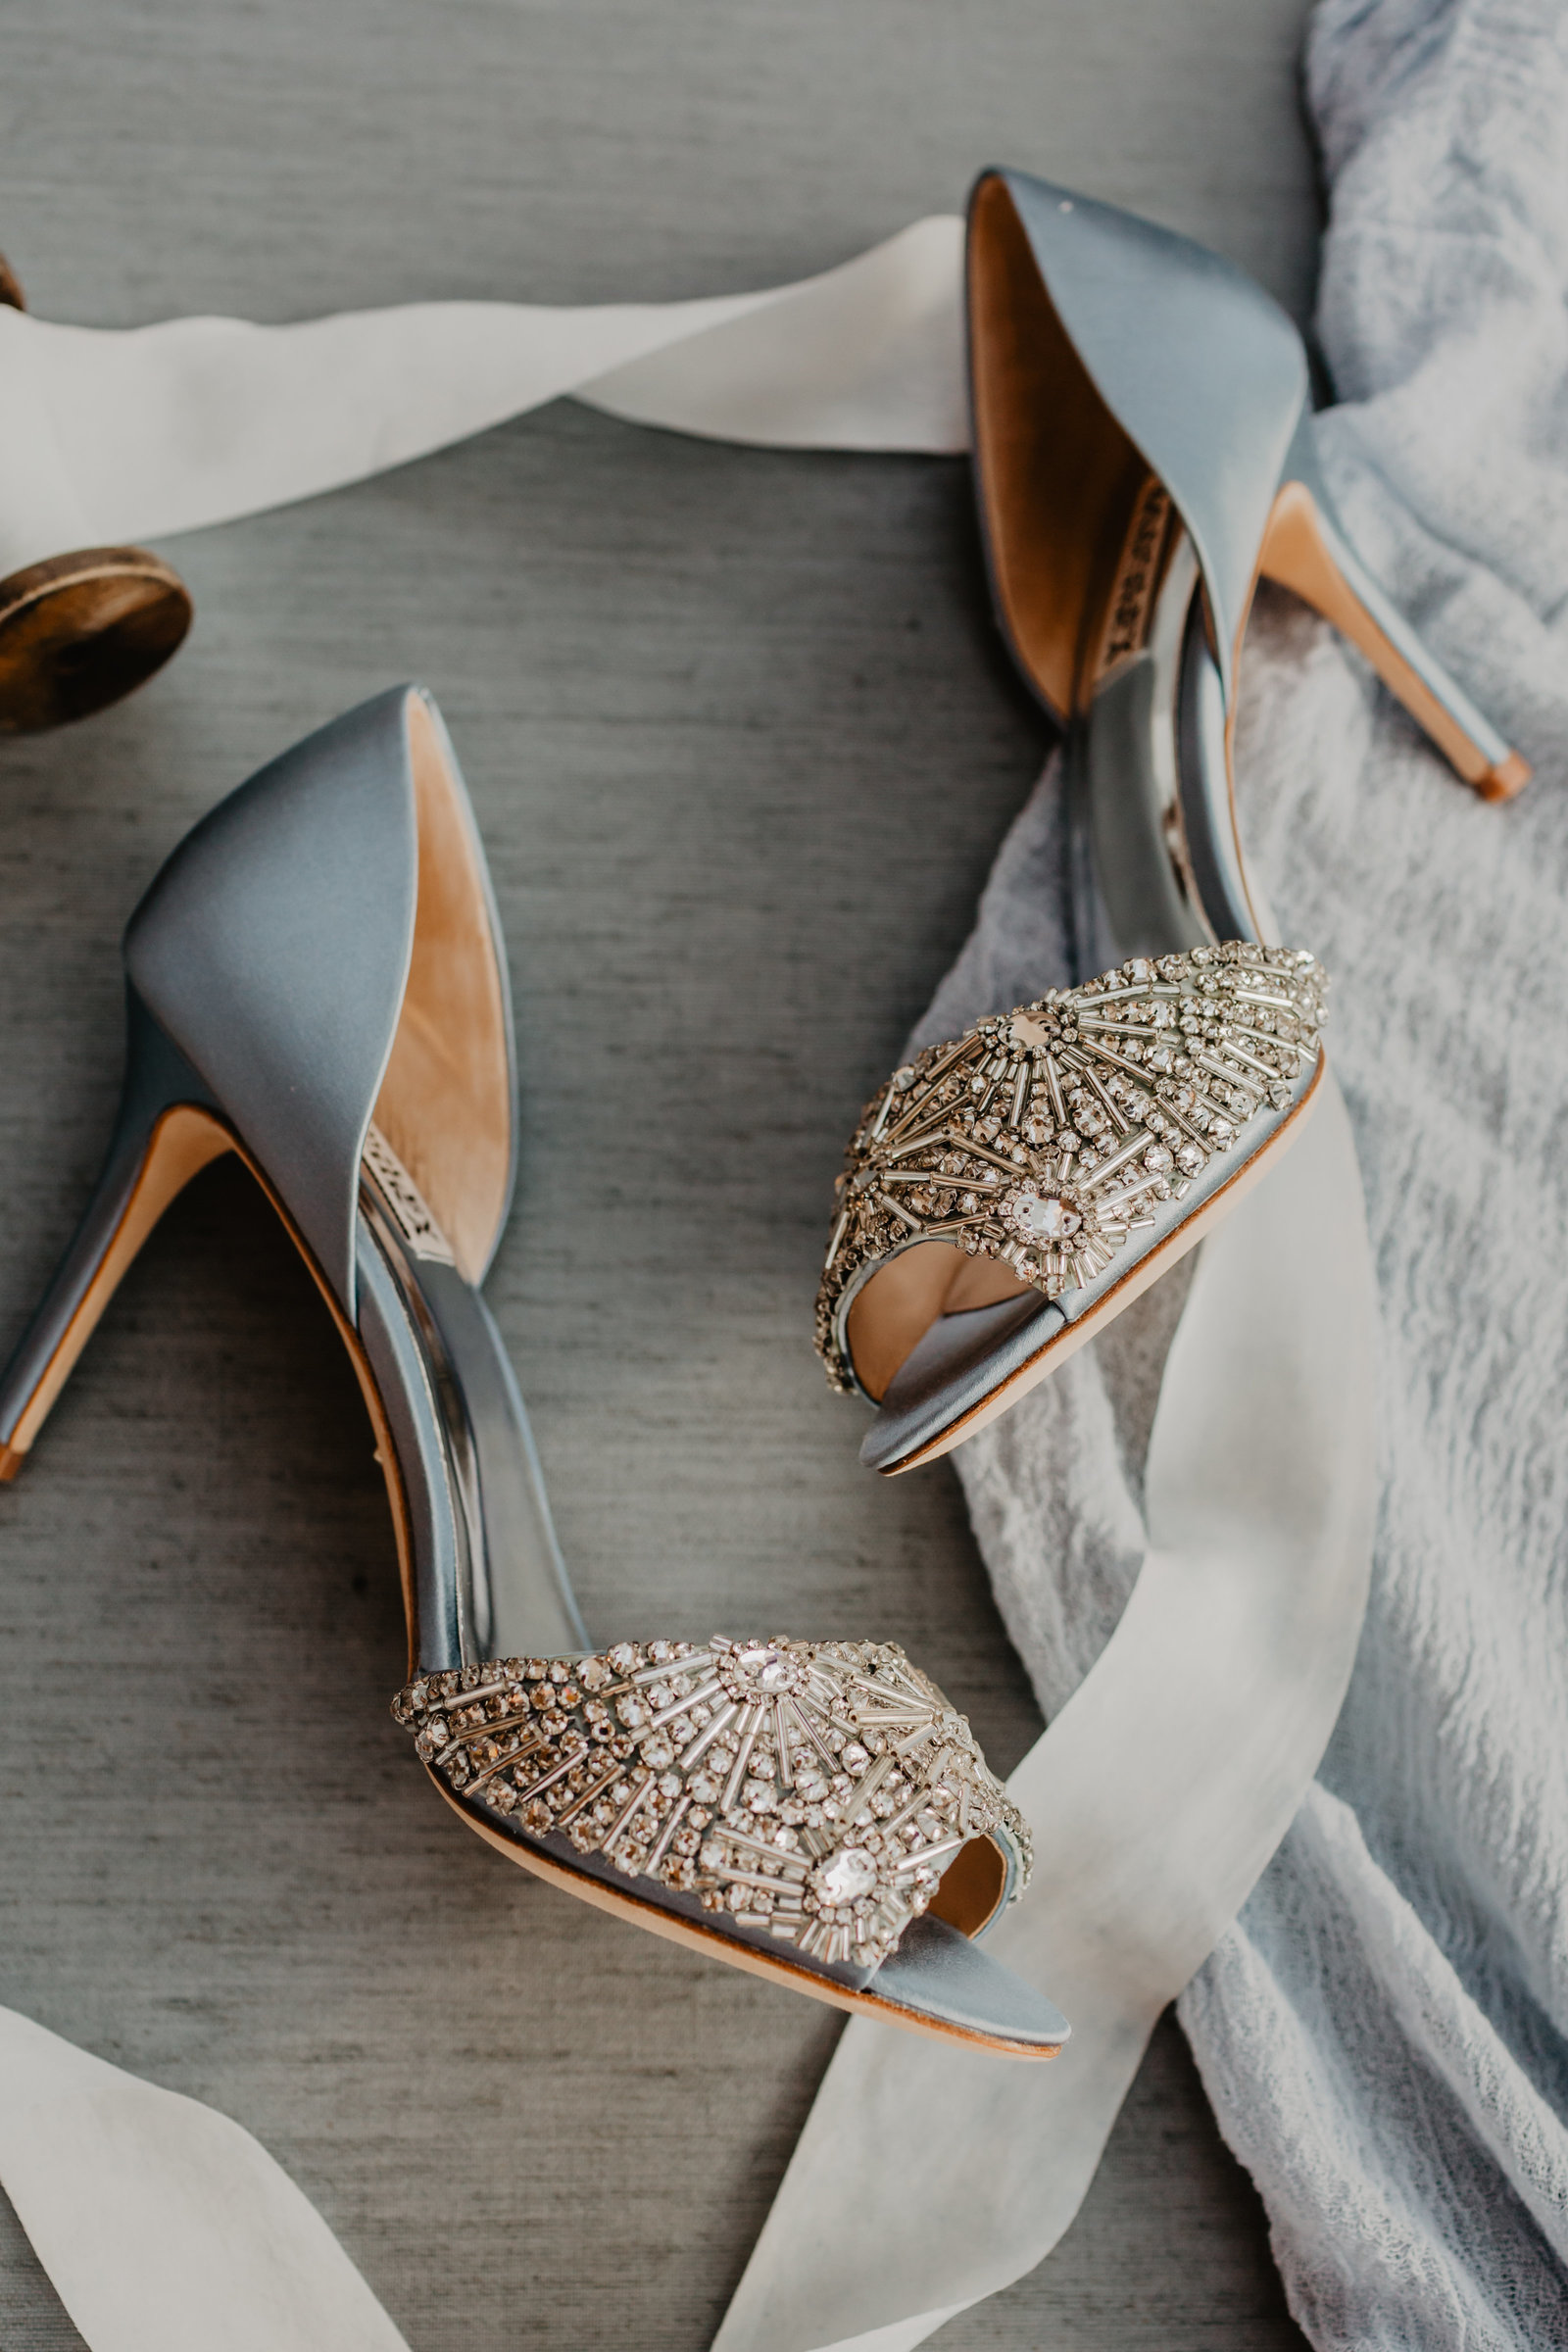 Blue wedding shoes with sparkly silver accents